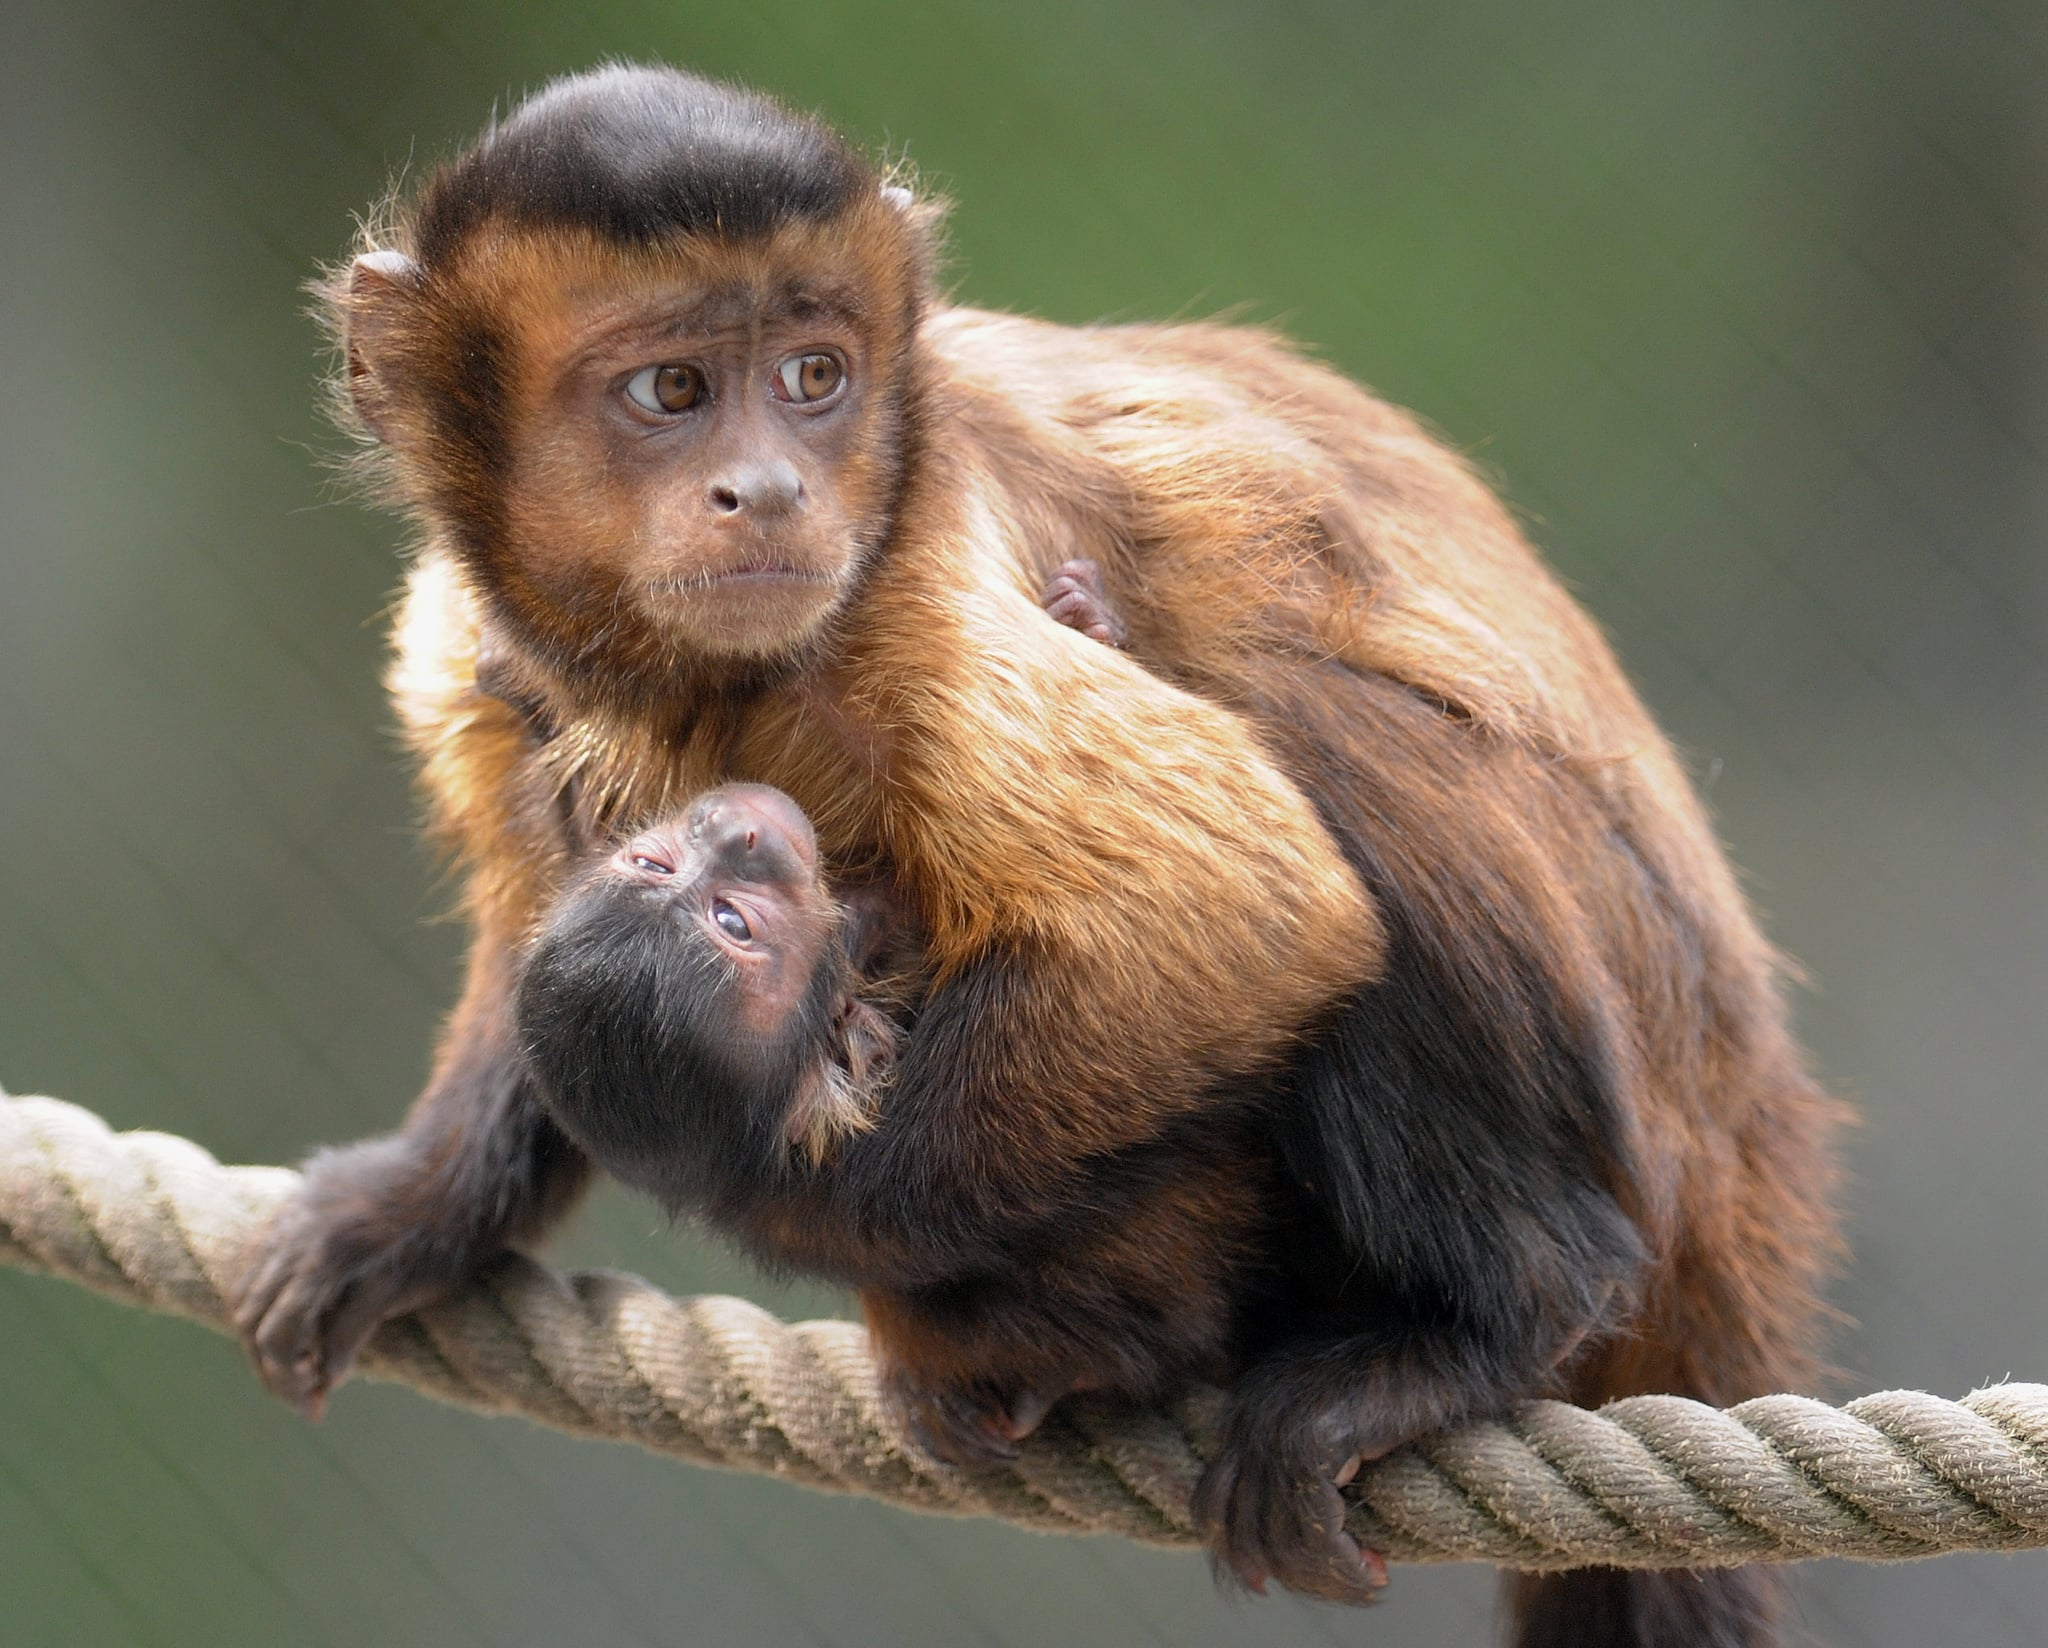 Capuchin monkeys got their name from the friars of the order Friars Minor Capuchin, who wore brown robes with hoods that covered their heads. Tufted capuchins have a distinctive crest of hair rising up from their foreheads and are avid tool-wielders in the wild (a talent that's exceeded in complexity only by chimpanzees).